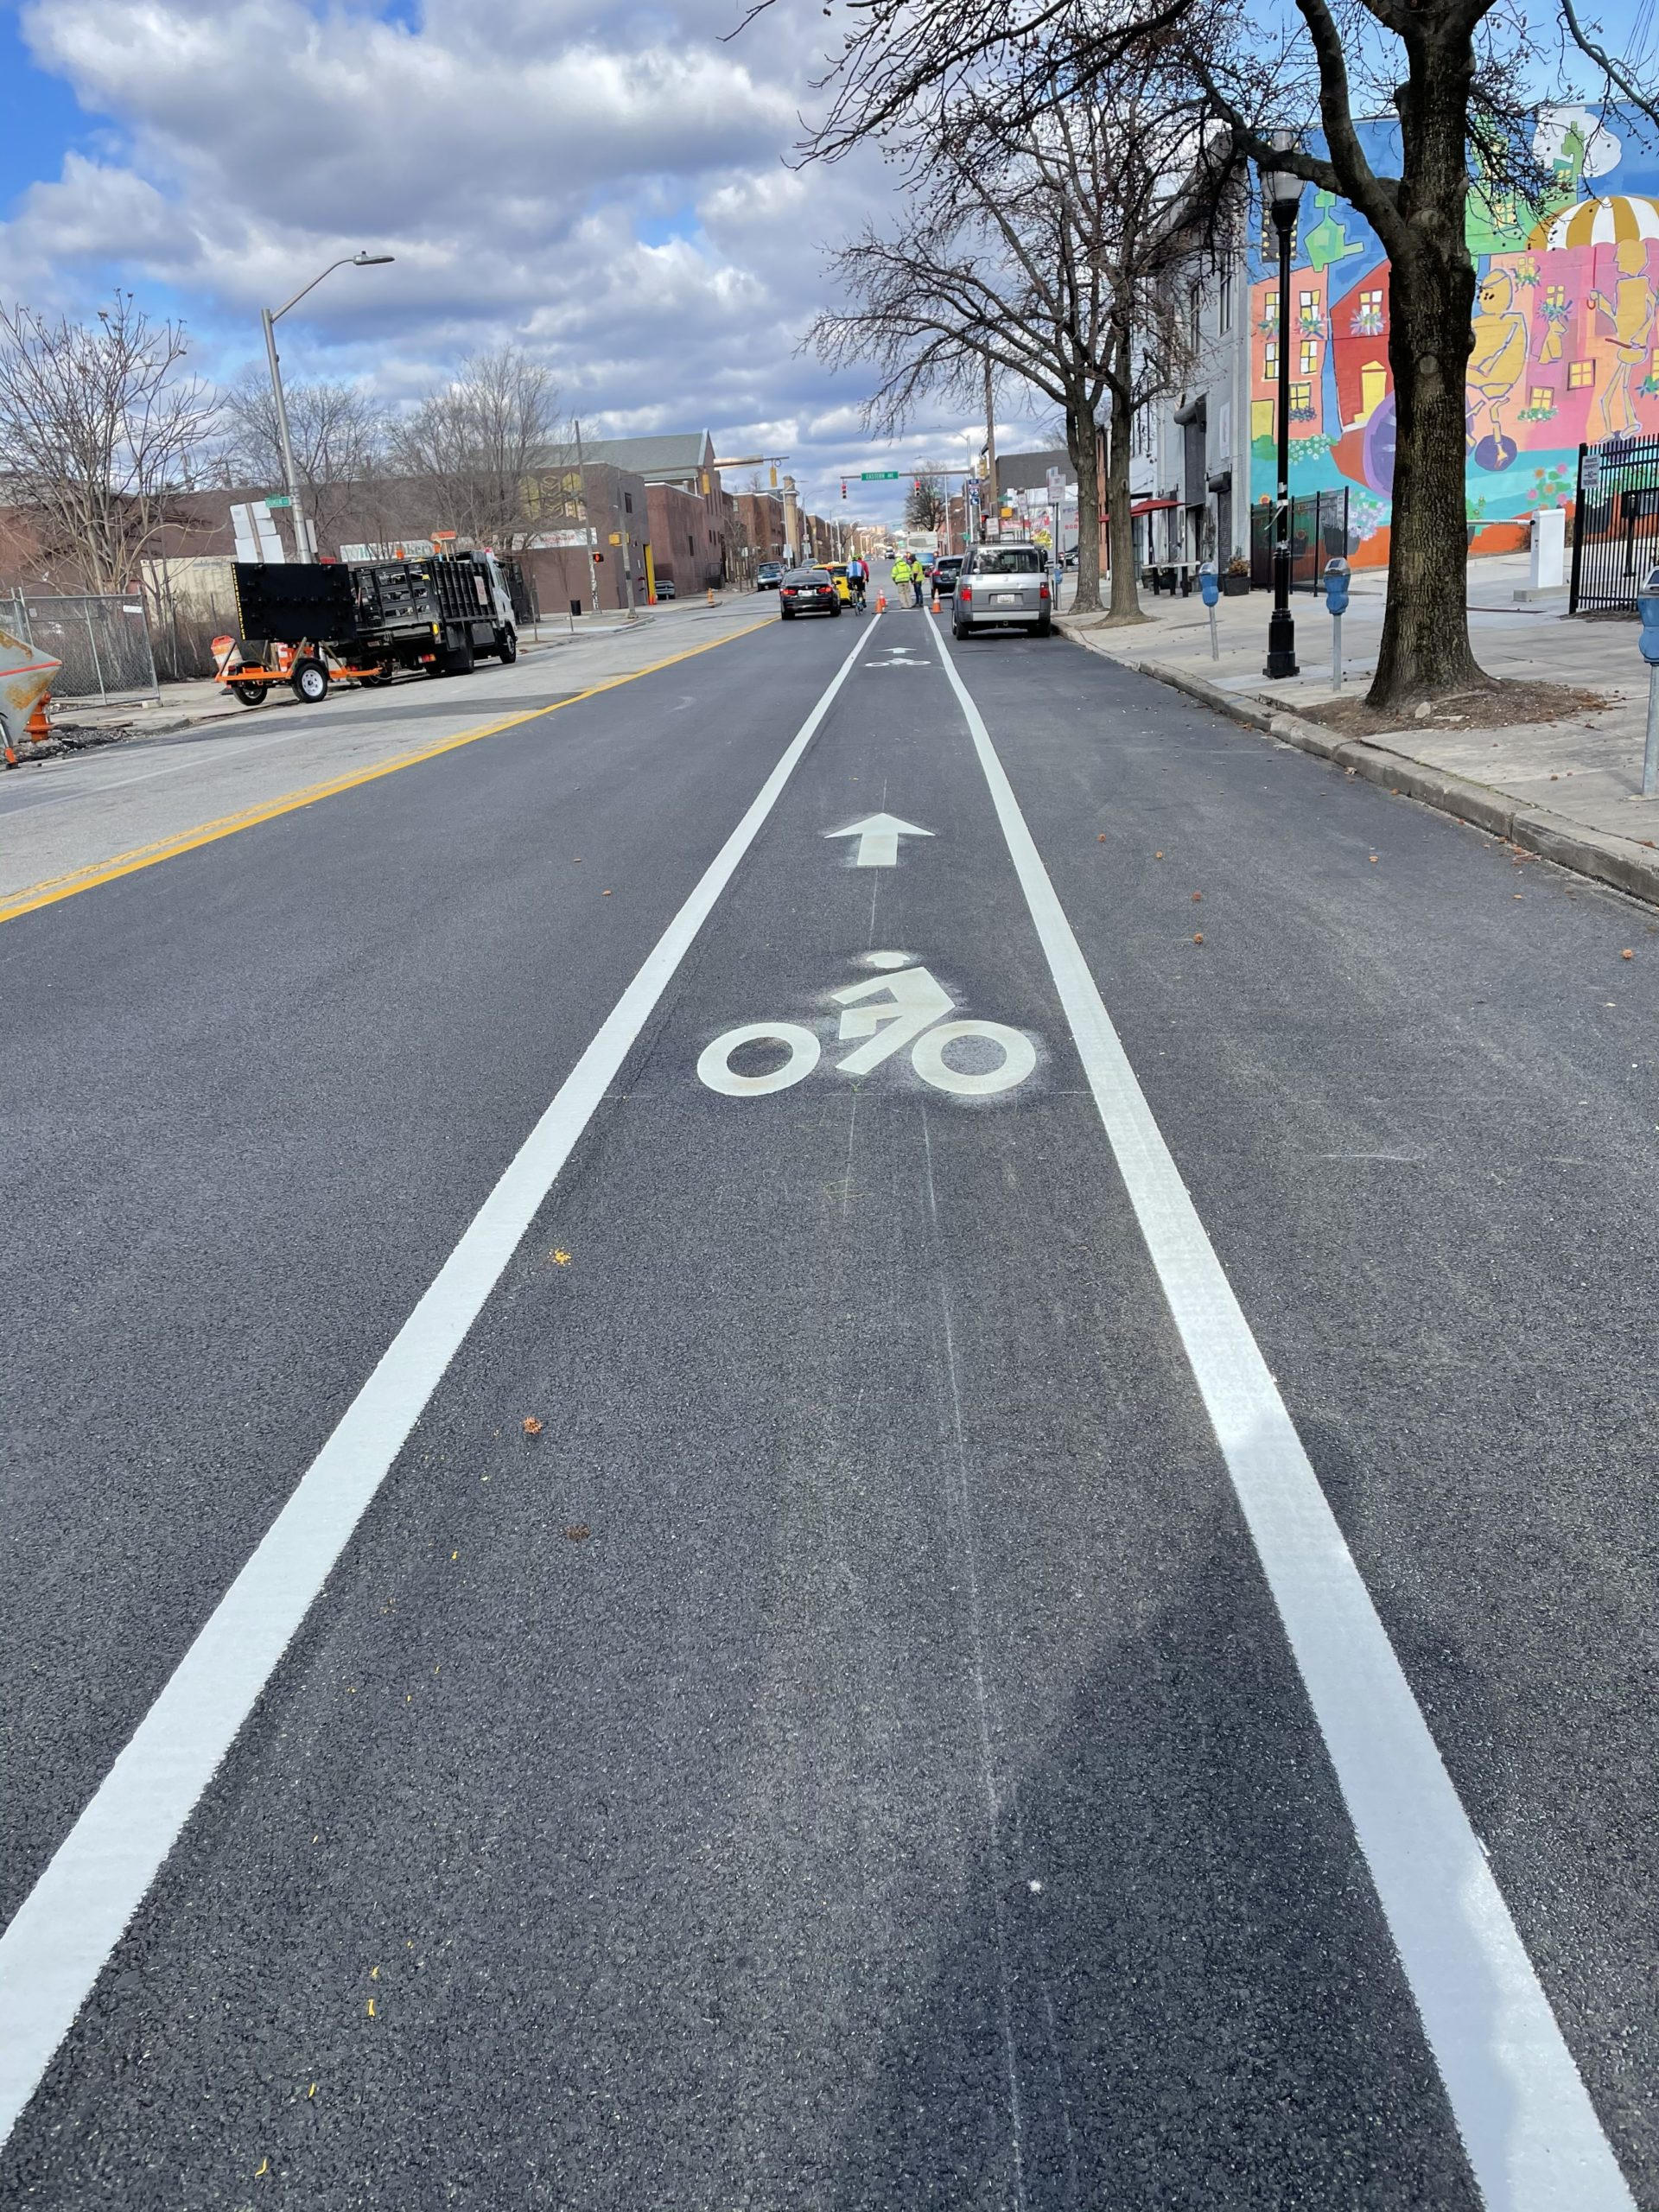 Types of Road Markings for Cyclists